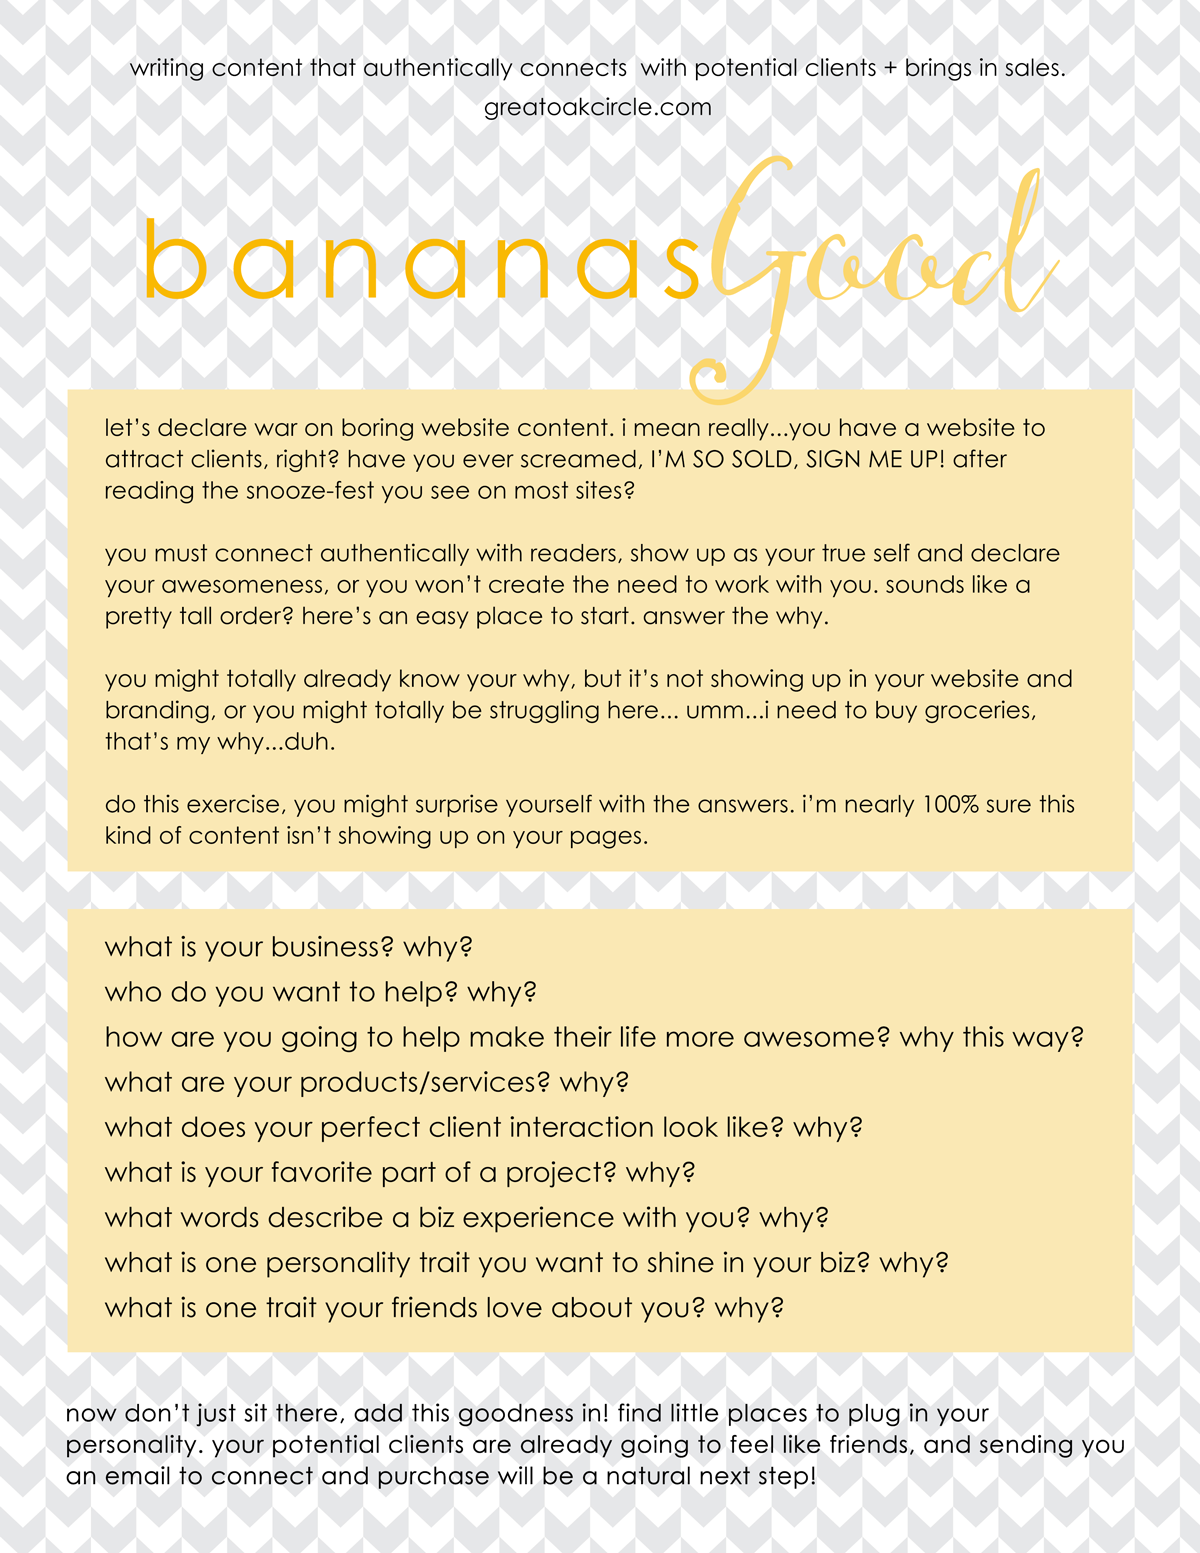 bananasgood-image